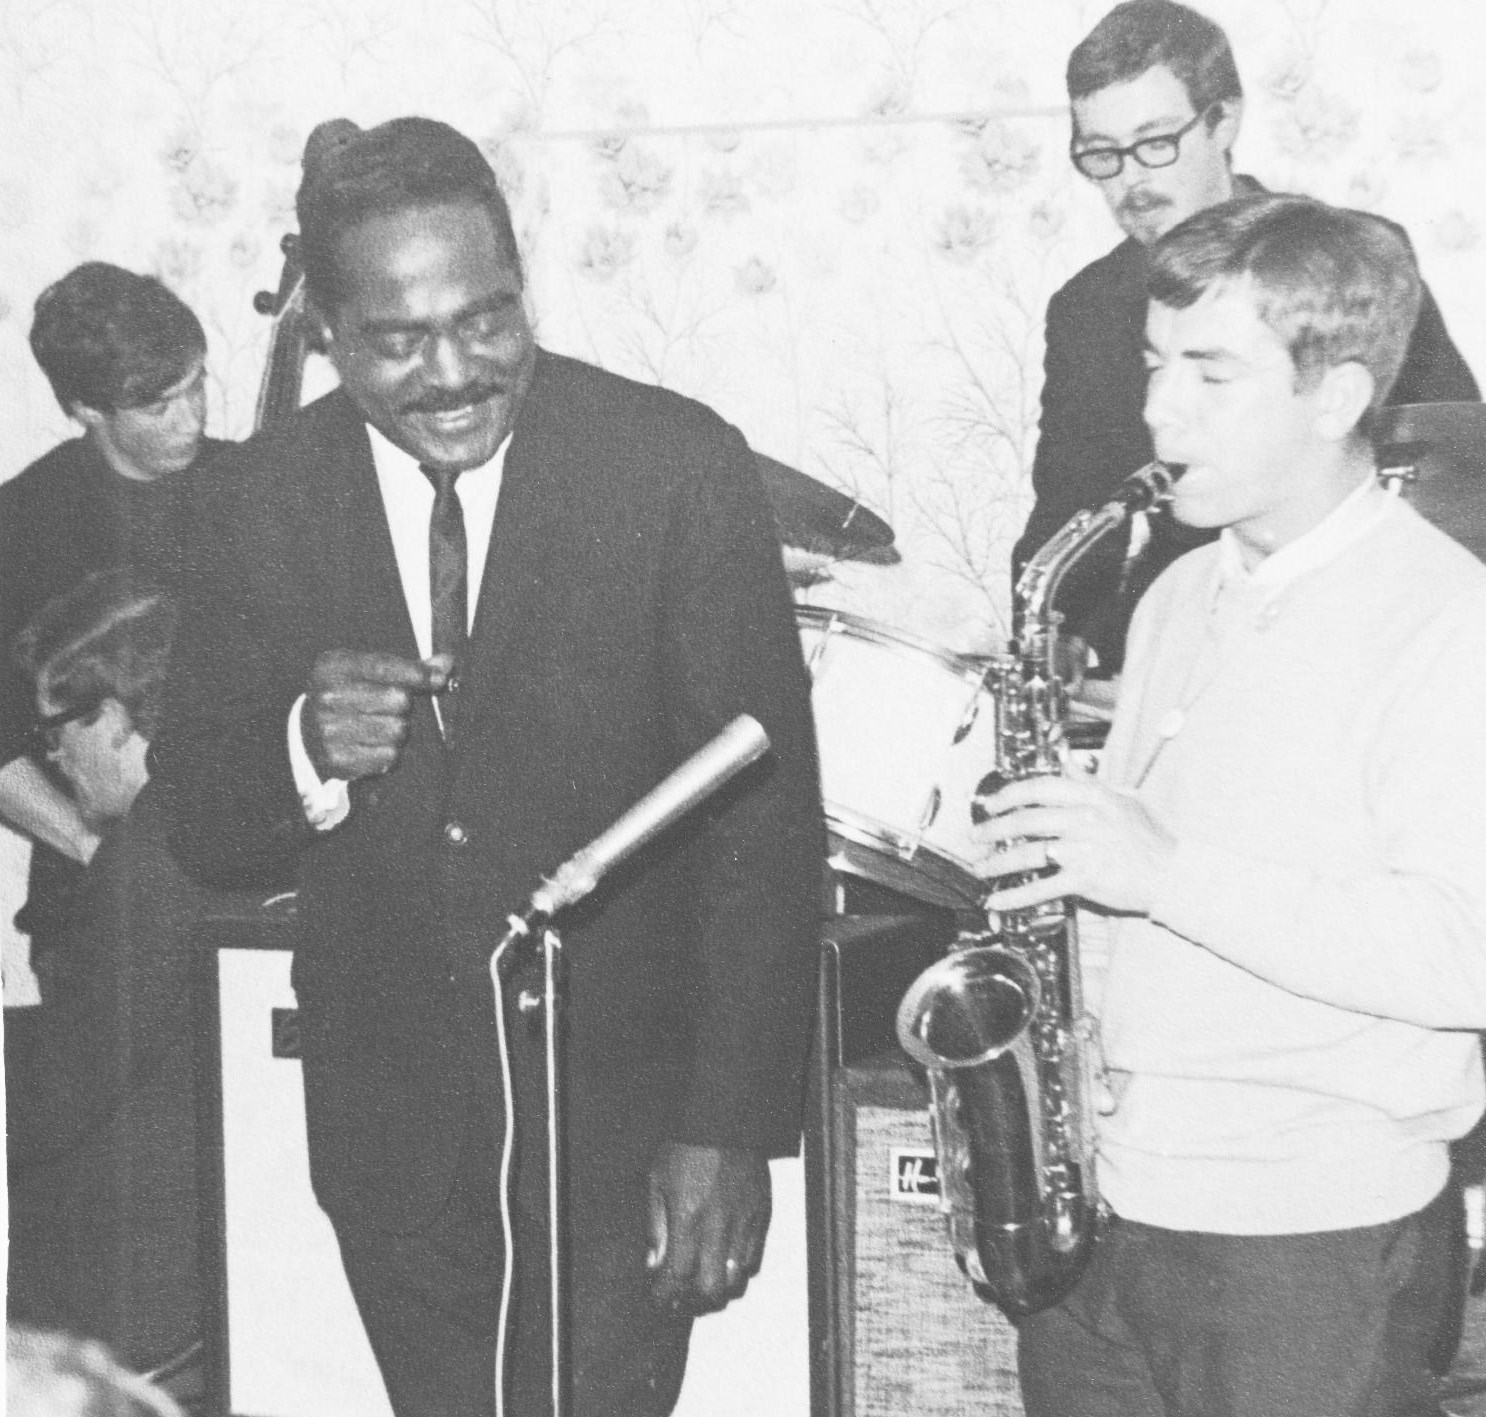 Jimmy Witherspoon with Pat Crumly (alto) Brian Priestley (p) Stan Johnstone (bs) and Spike Wells (d)